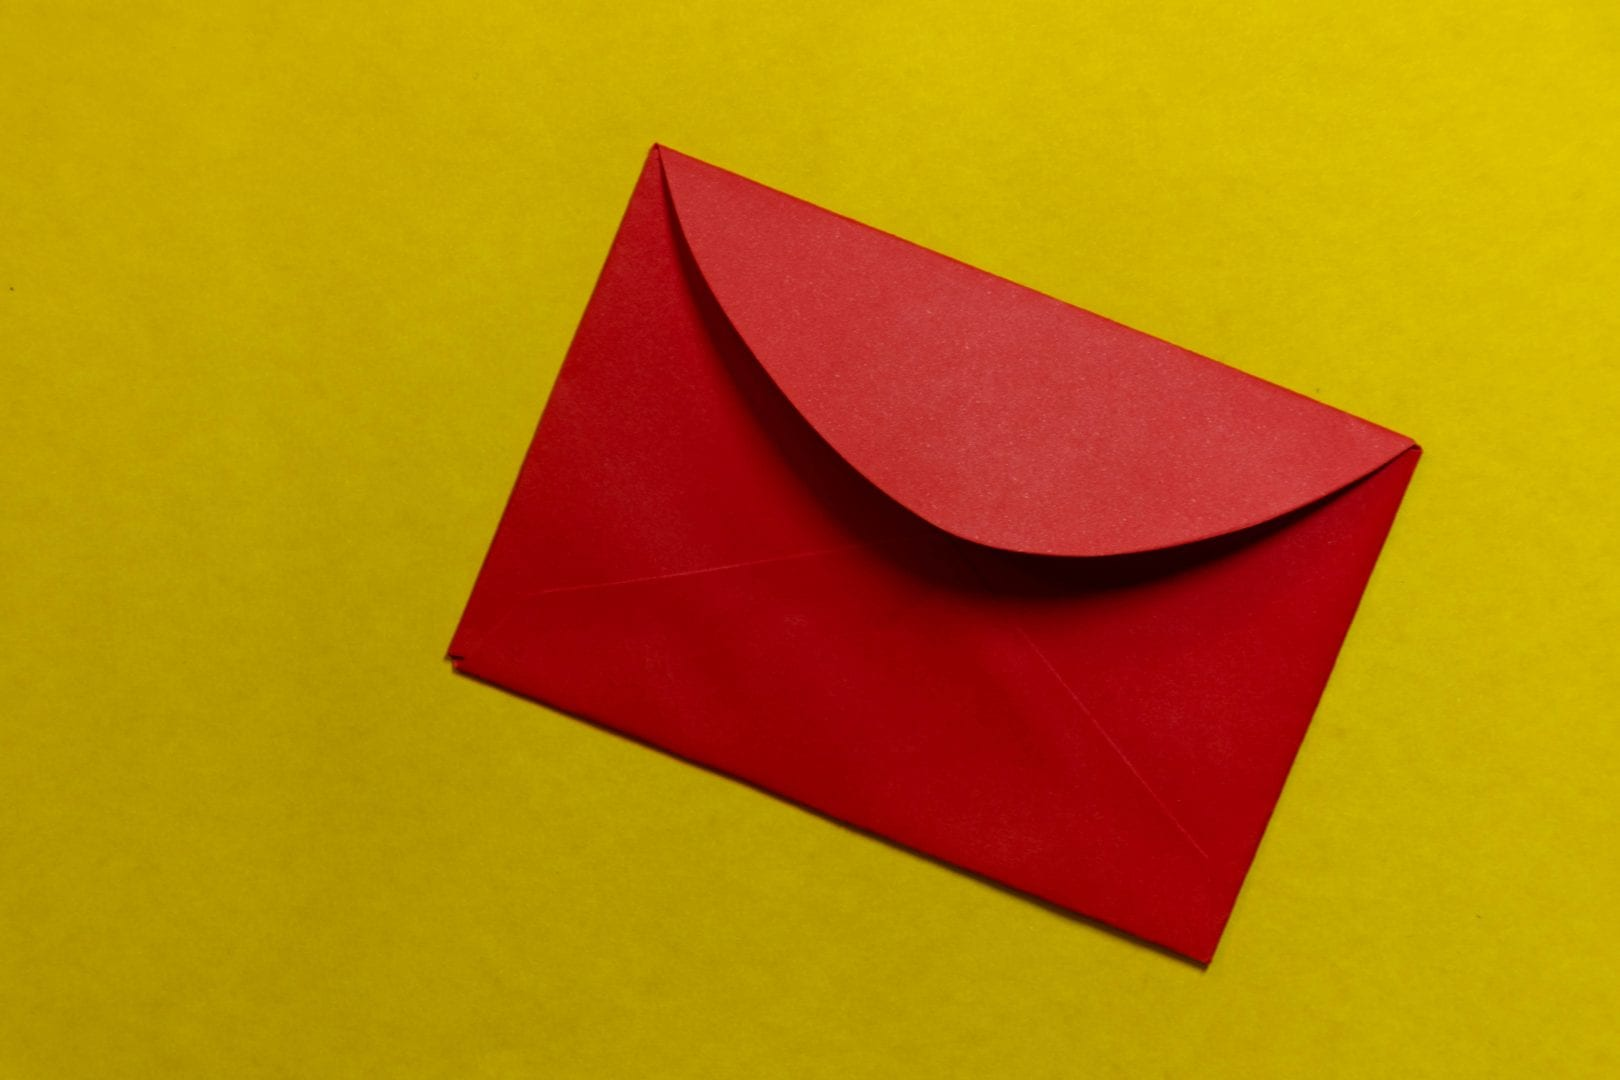 a red envelope on a yellow background